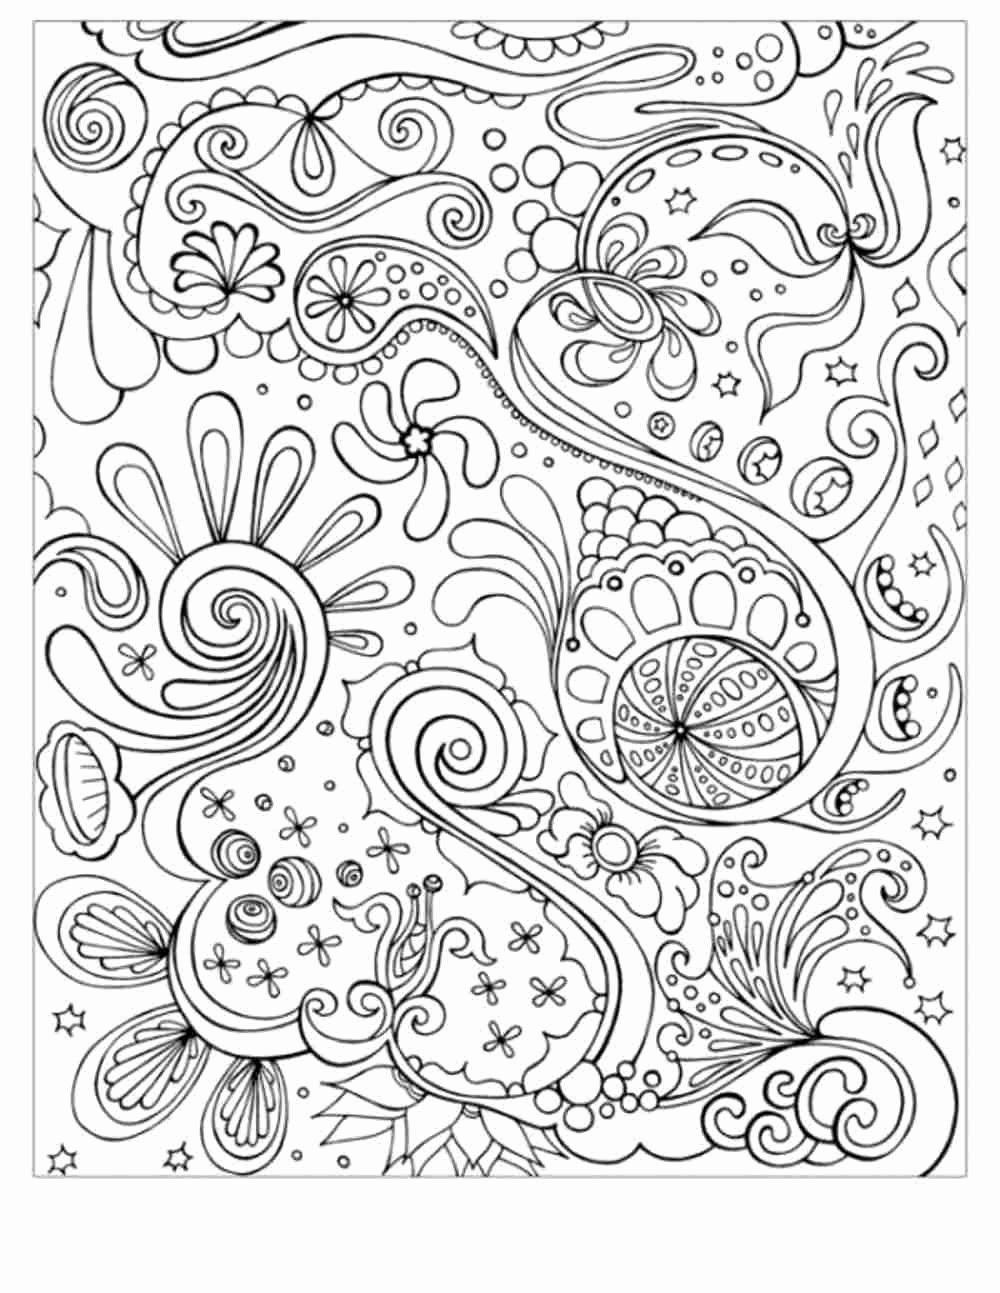 Alphabet Coloring Worksheets A Z Pdf Coloring Pages Gallery Mandala Coloring Pages Abstract Coloring Pages Owl Coloring Pages